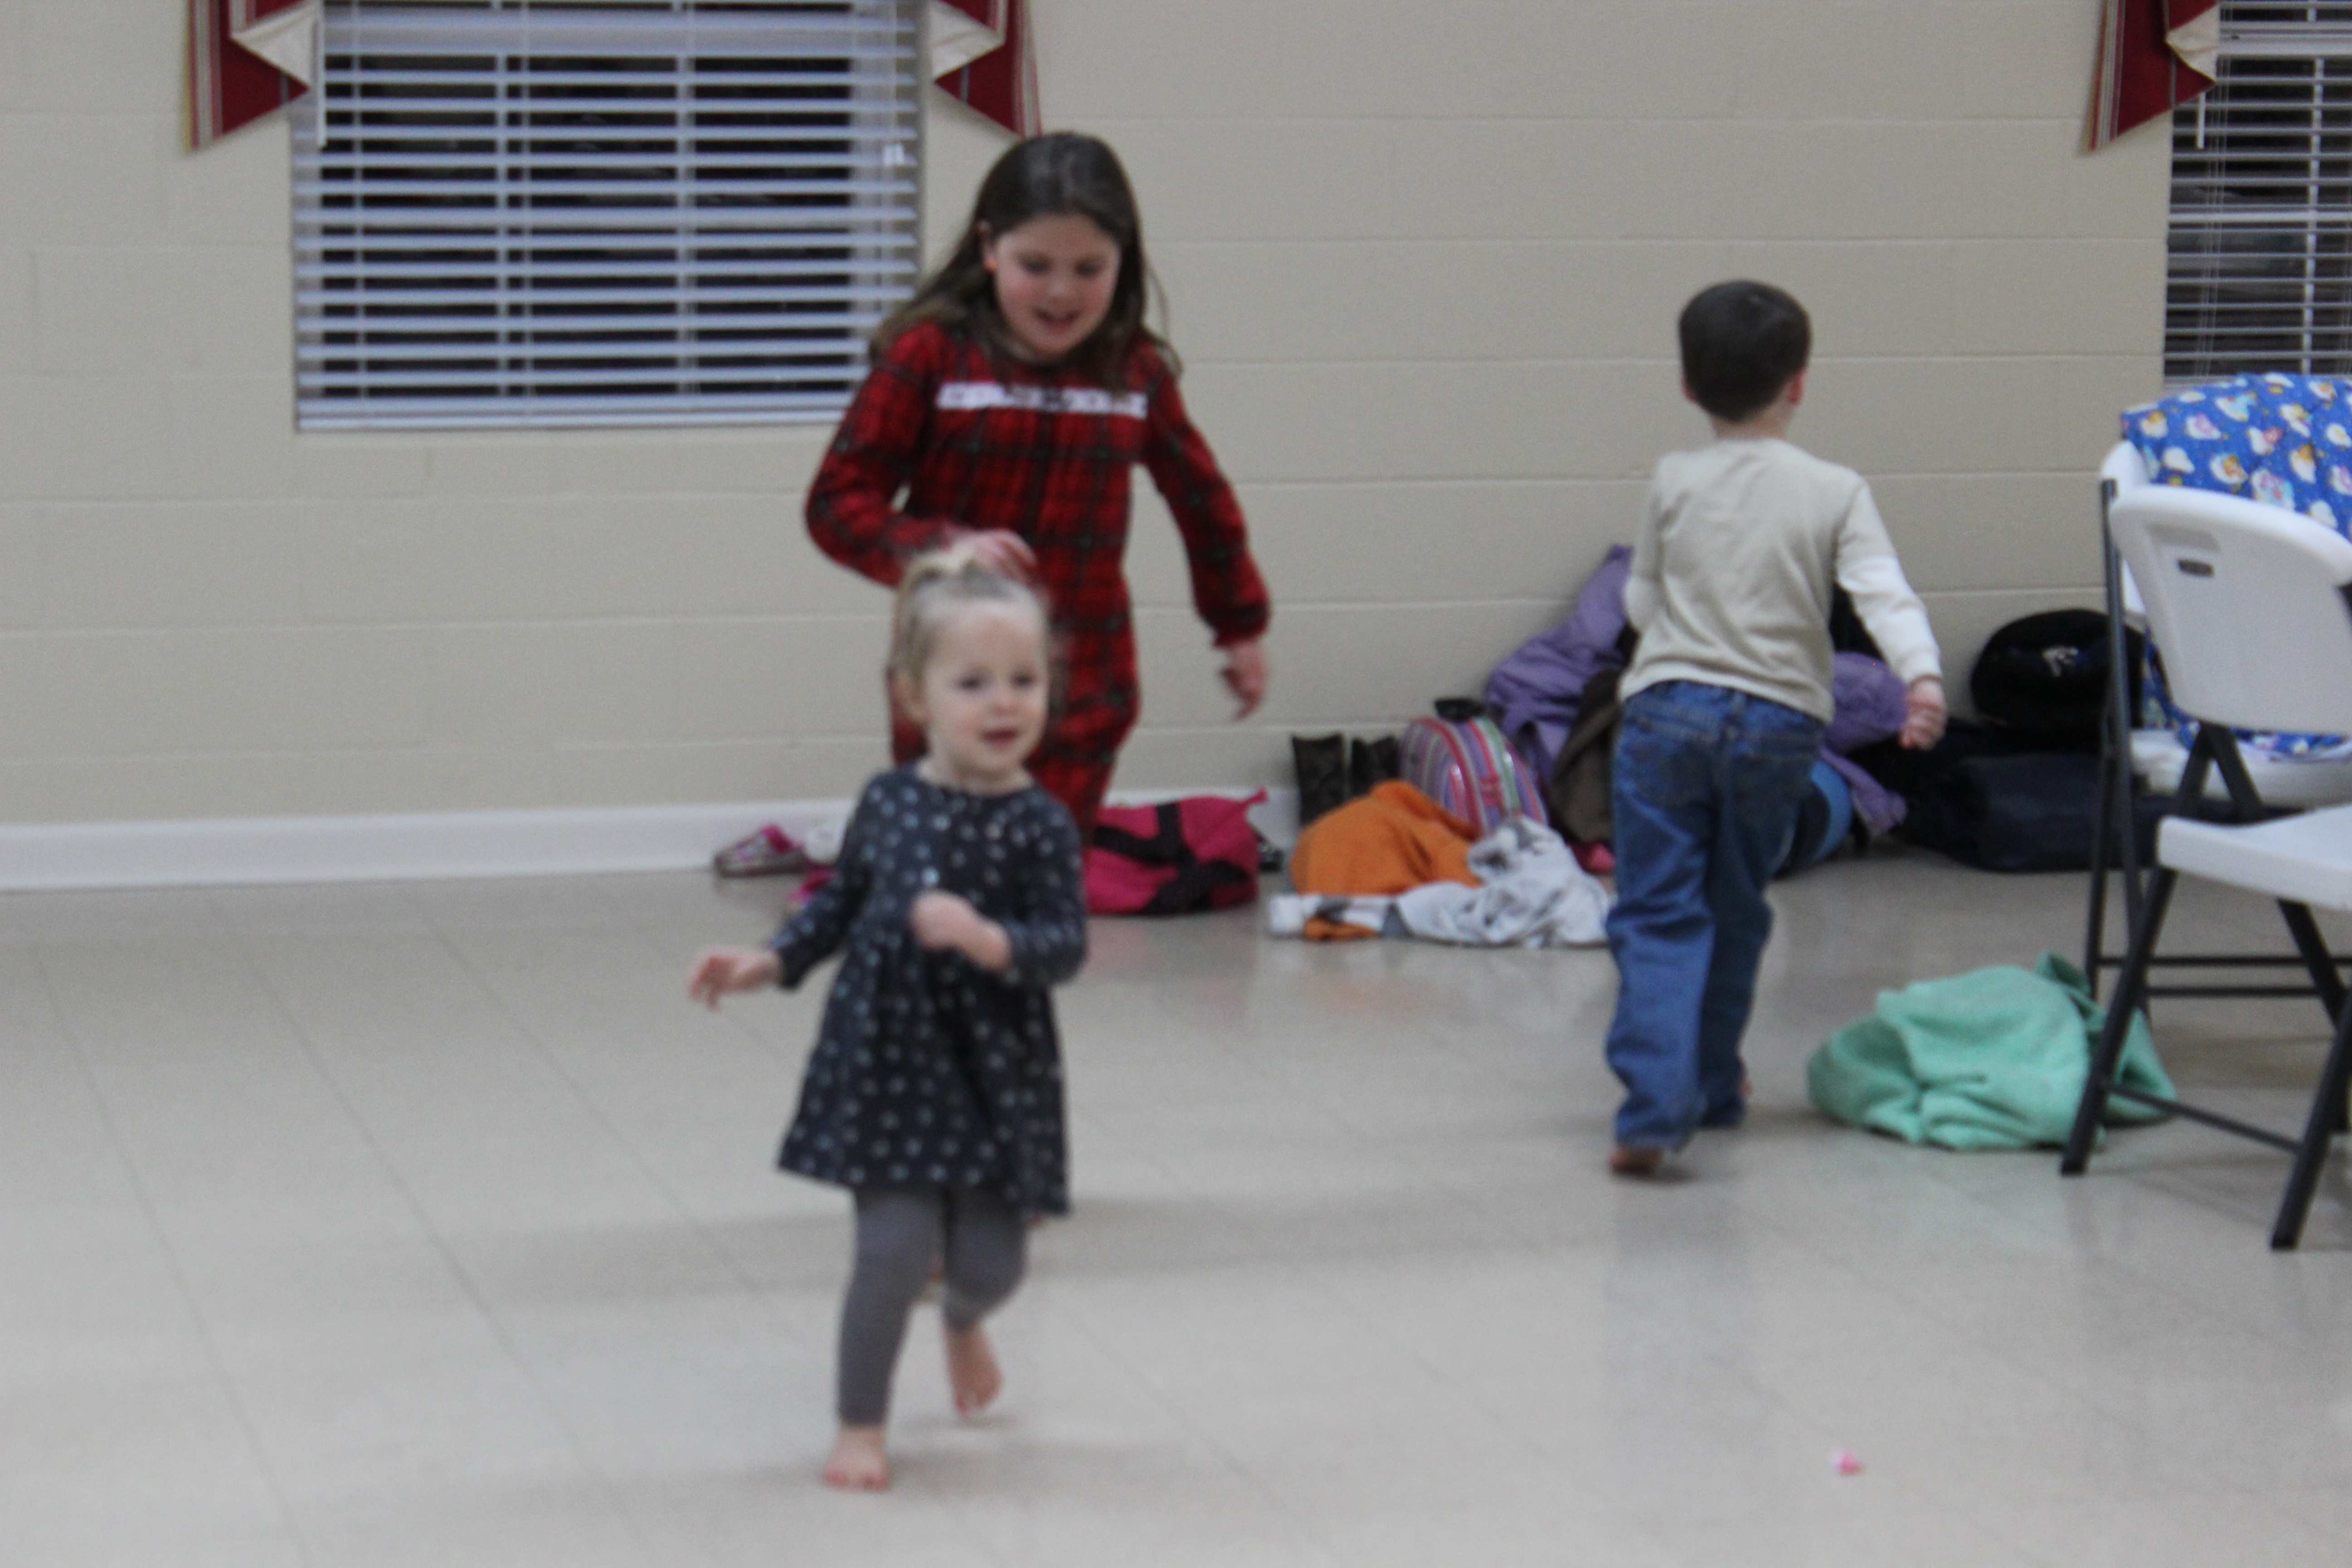 pictures of Lock-in 007